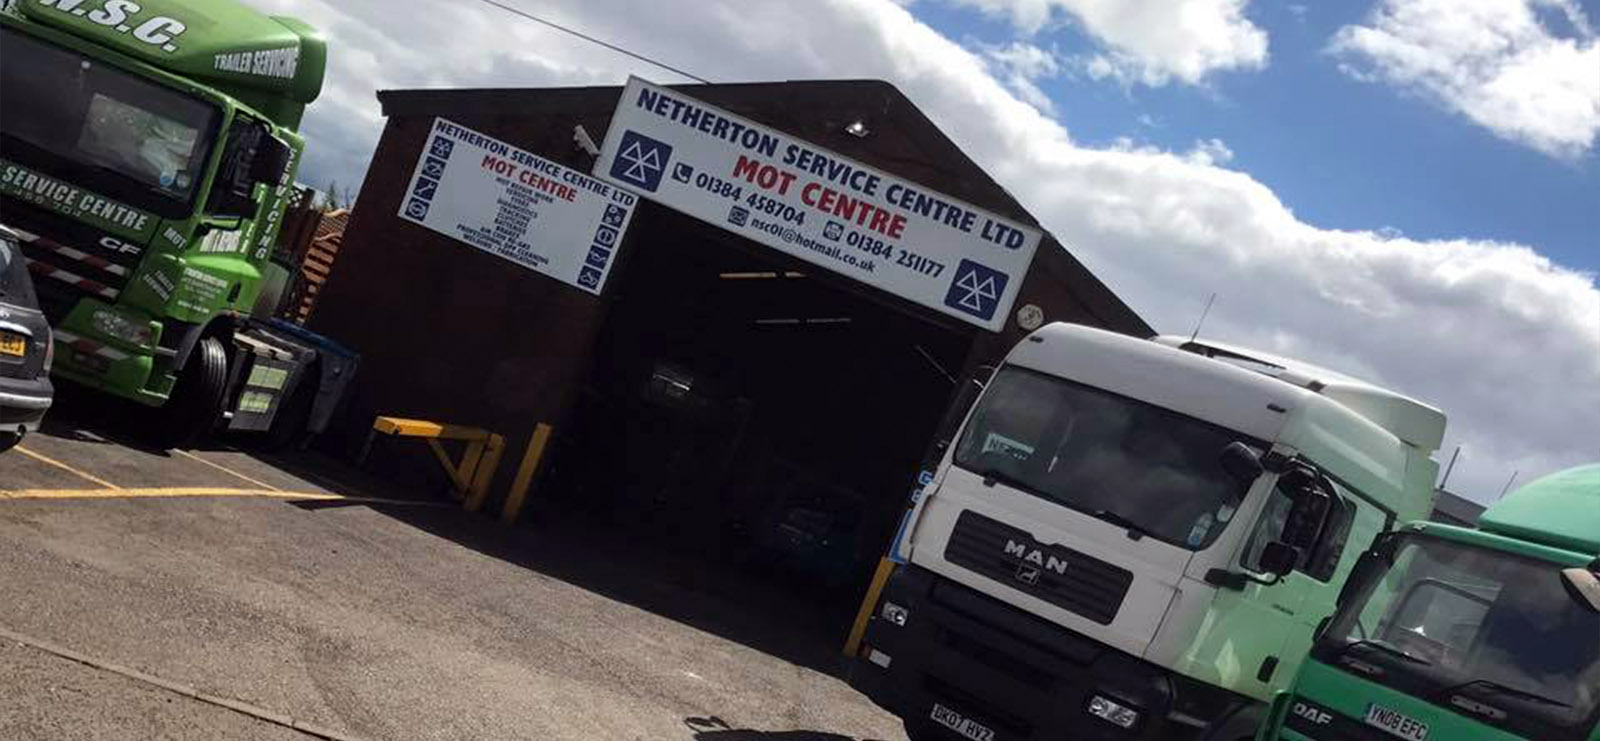 Netherton Service Centre is the top choice in Dudley for tyres, exhausts, brakes, servicing, MOT testing, cars and vans